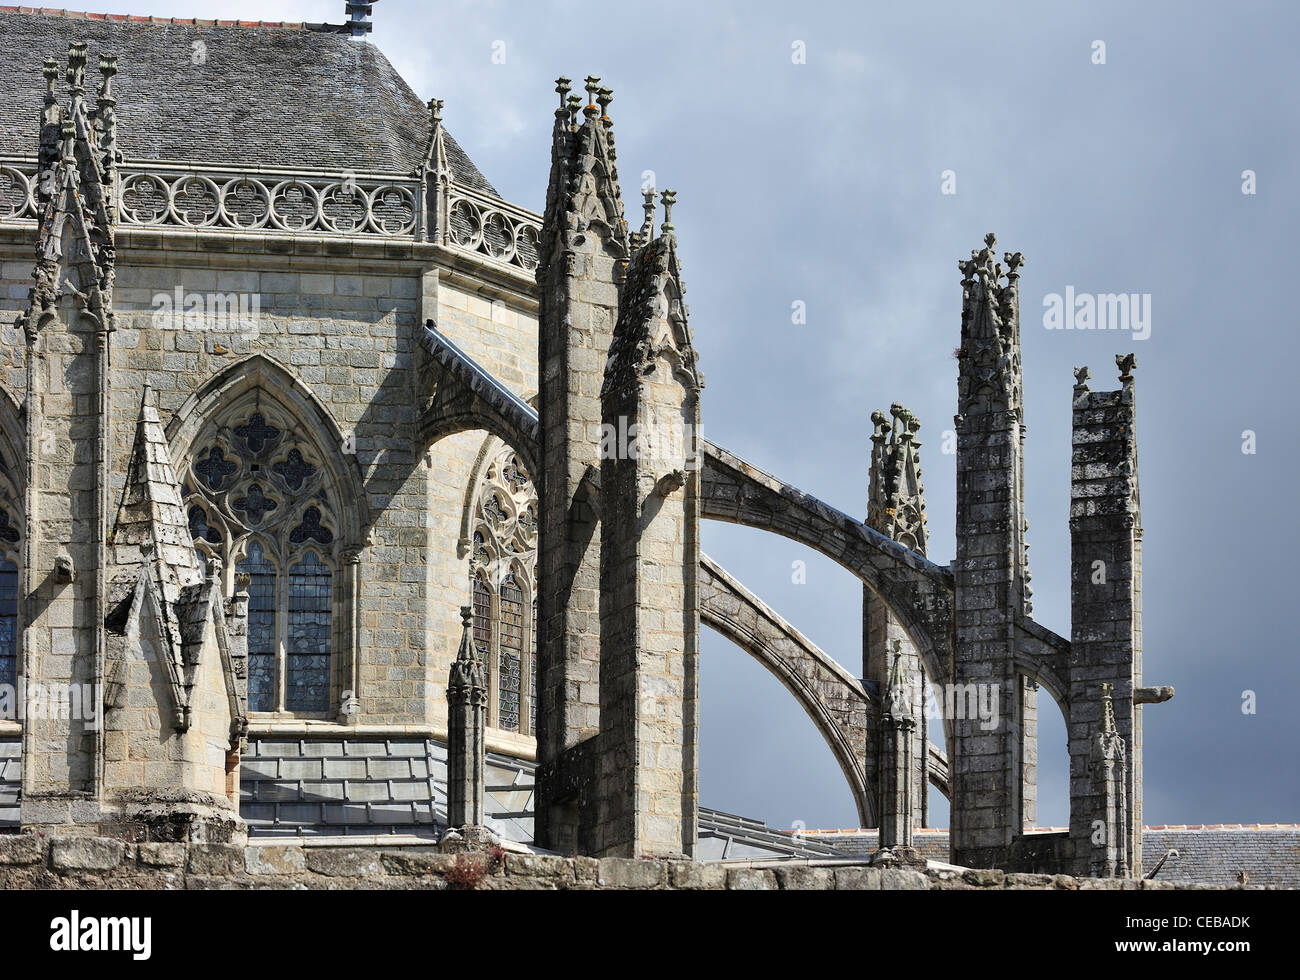 flying buttress stock photos  flying buttress stock images  alamy - flying buttresses of the gothic quimper cathedral  cathédralesaintcorentin de quimper finistère